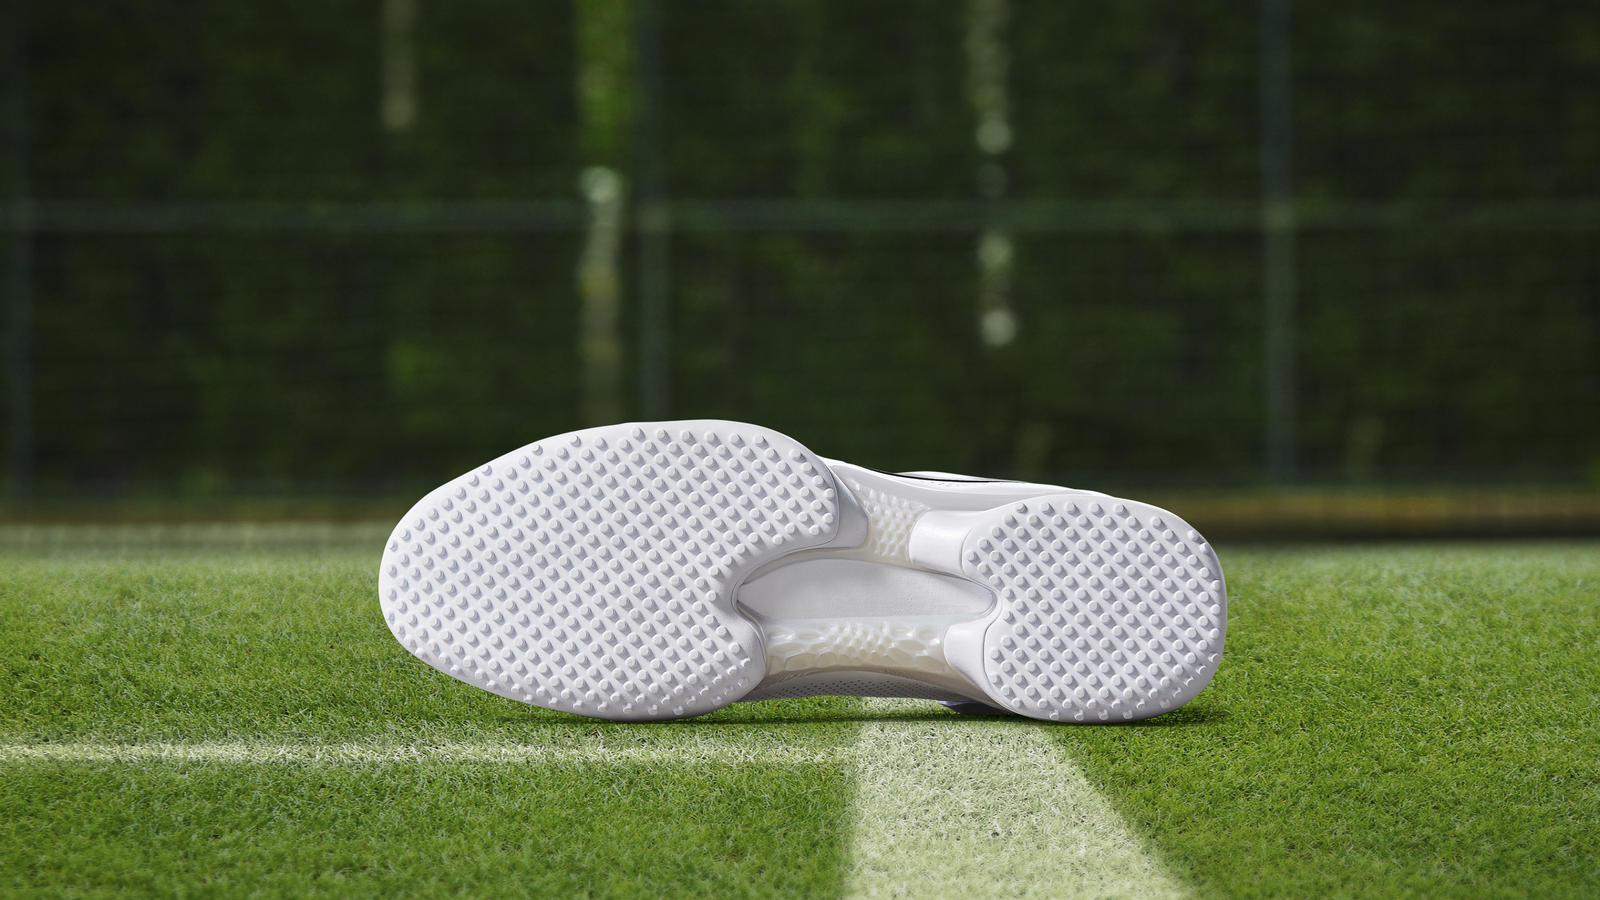 Nikecourt air zoom ultrafly grass 2 hd 1600